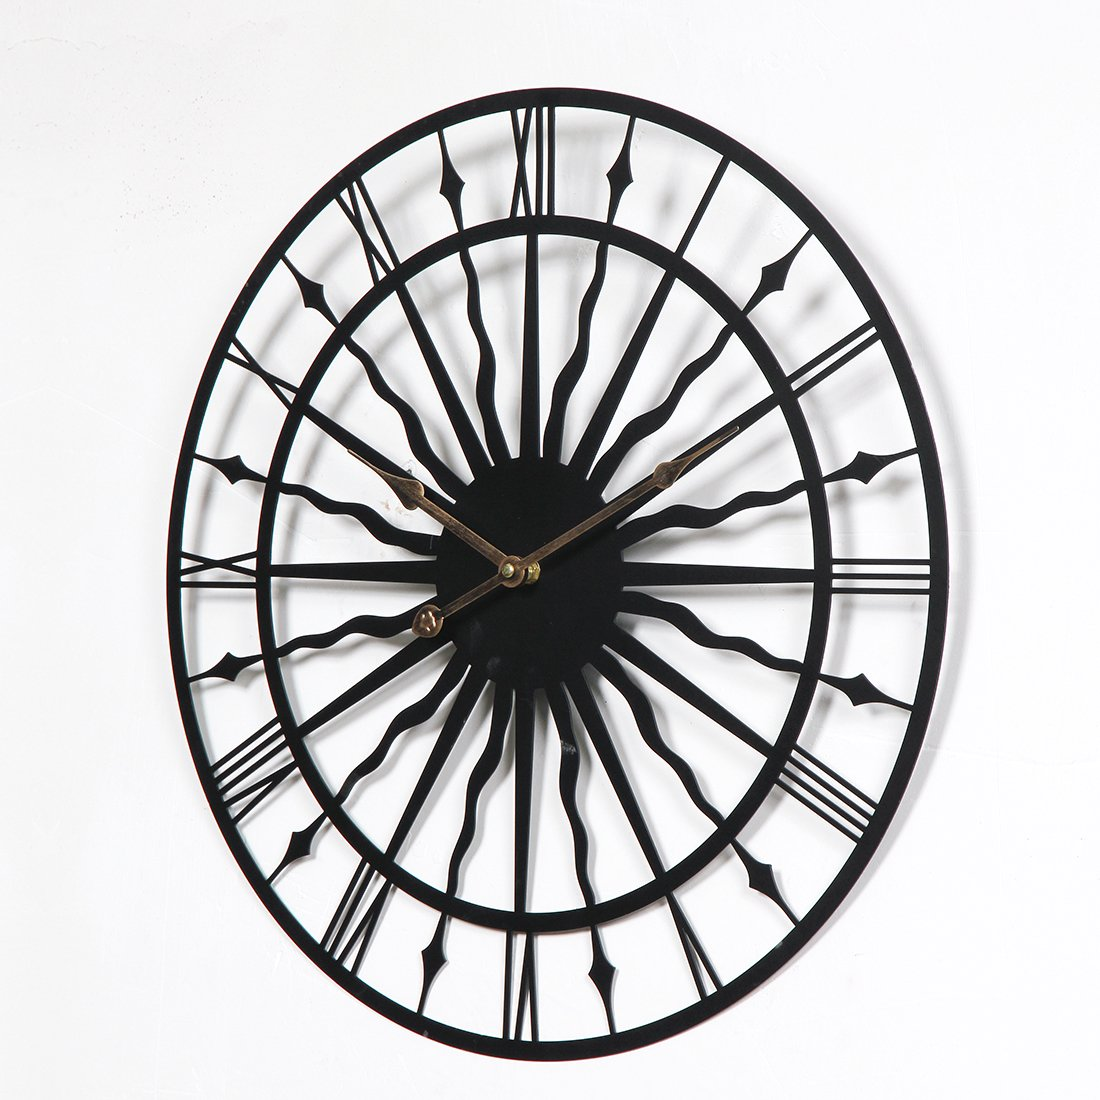 Amazon.com: Wall Clock, Lingxuinfo 19.7-inch Creative Retro Round Silent Iron Wall Clock Decorative Clock for Kitchen Living Room Bedroom Office(Wavy Iron) ...